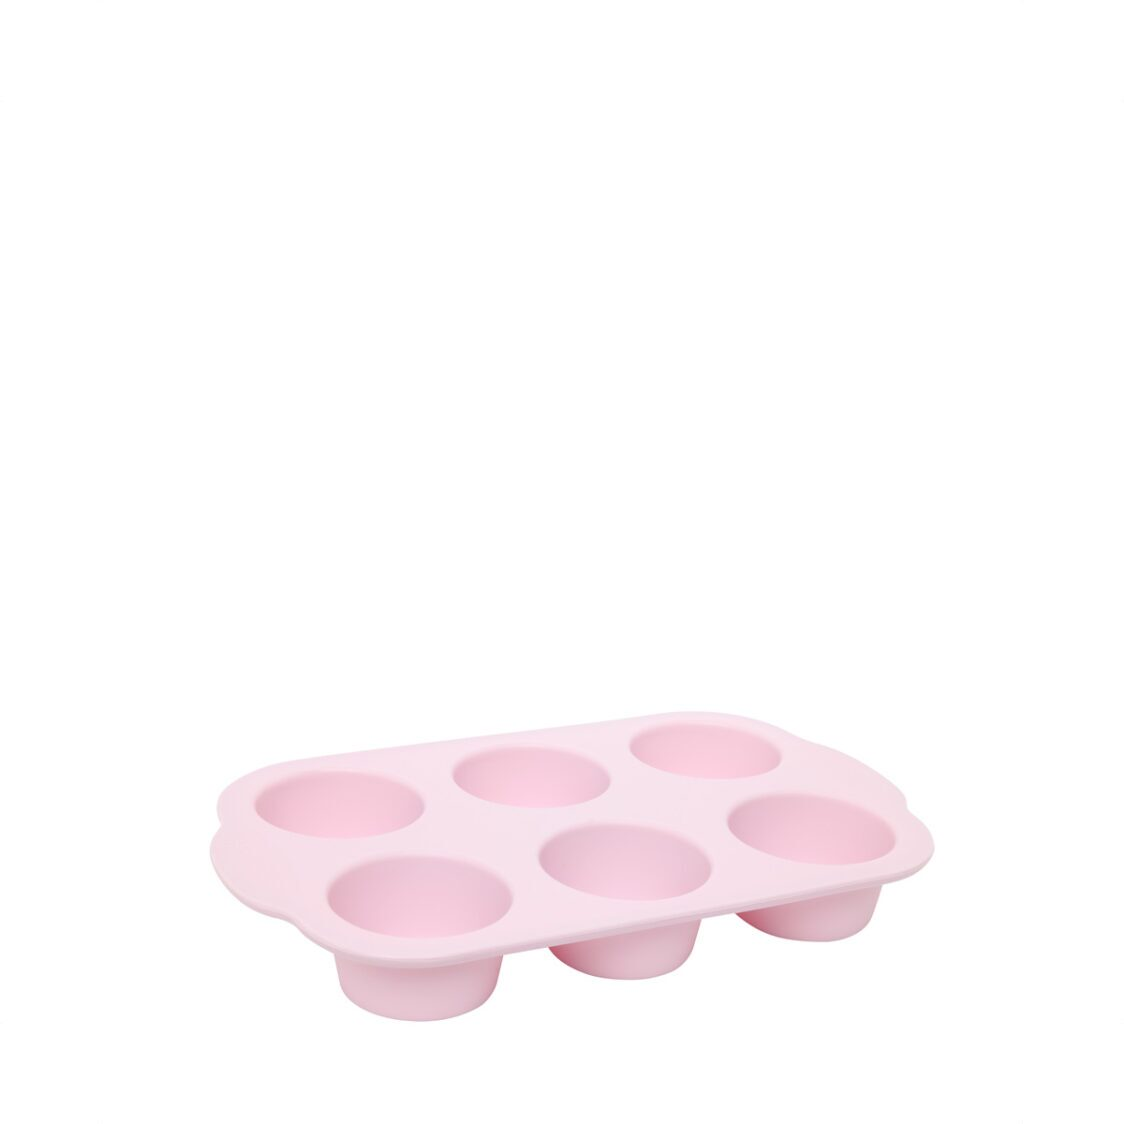 Wiltshire Bend N Bake 6 Cup Muffin Pan